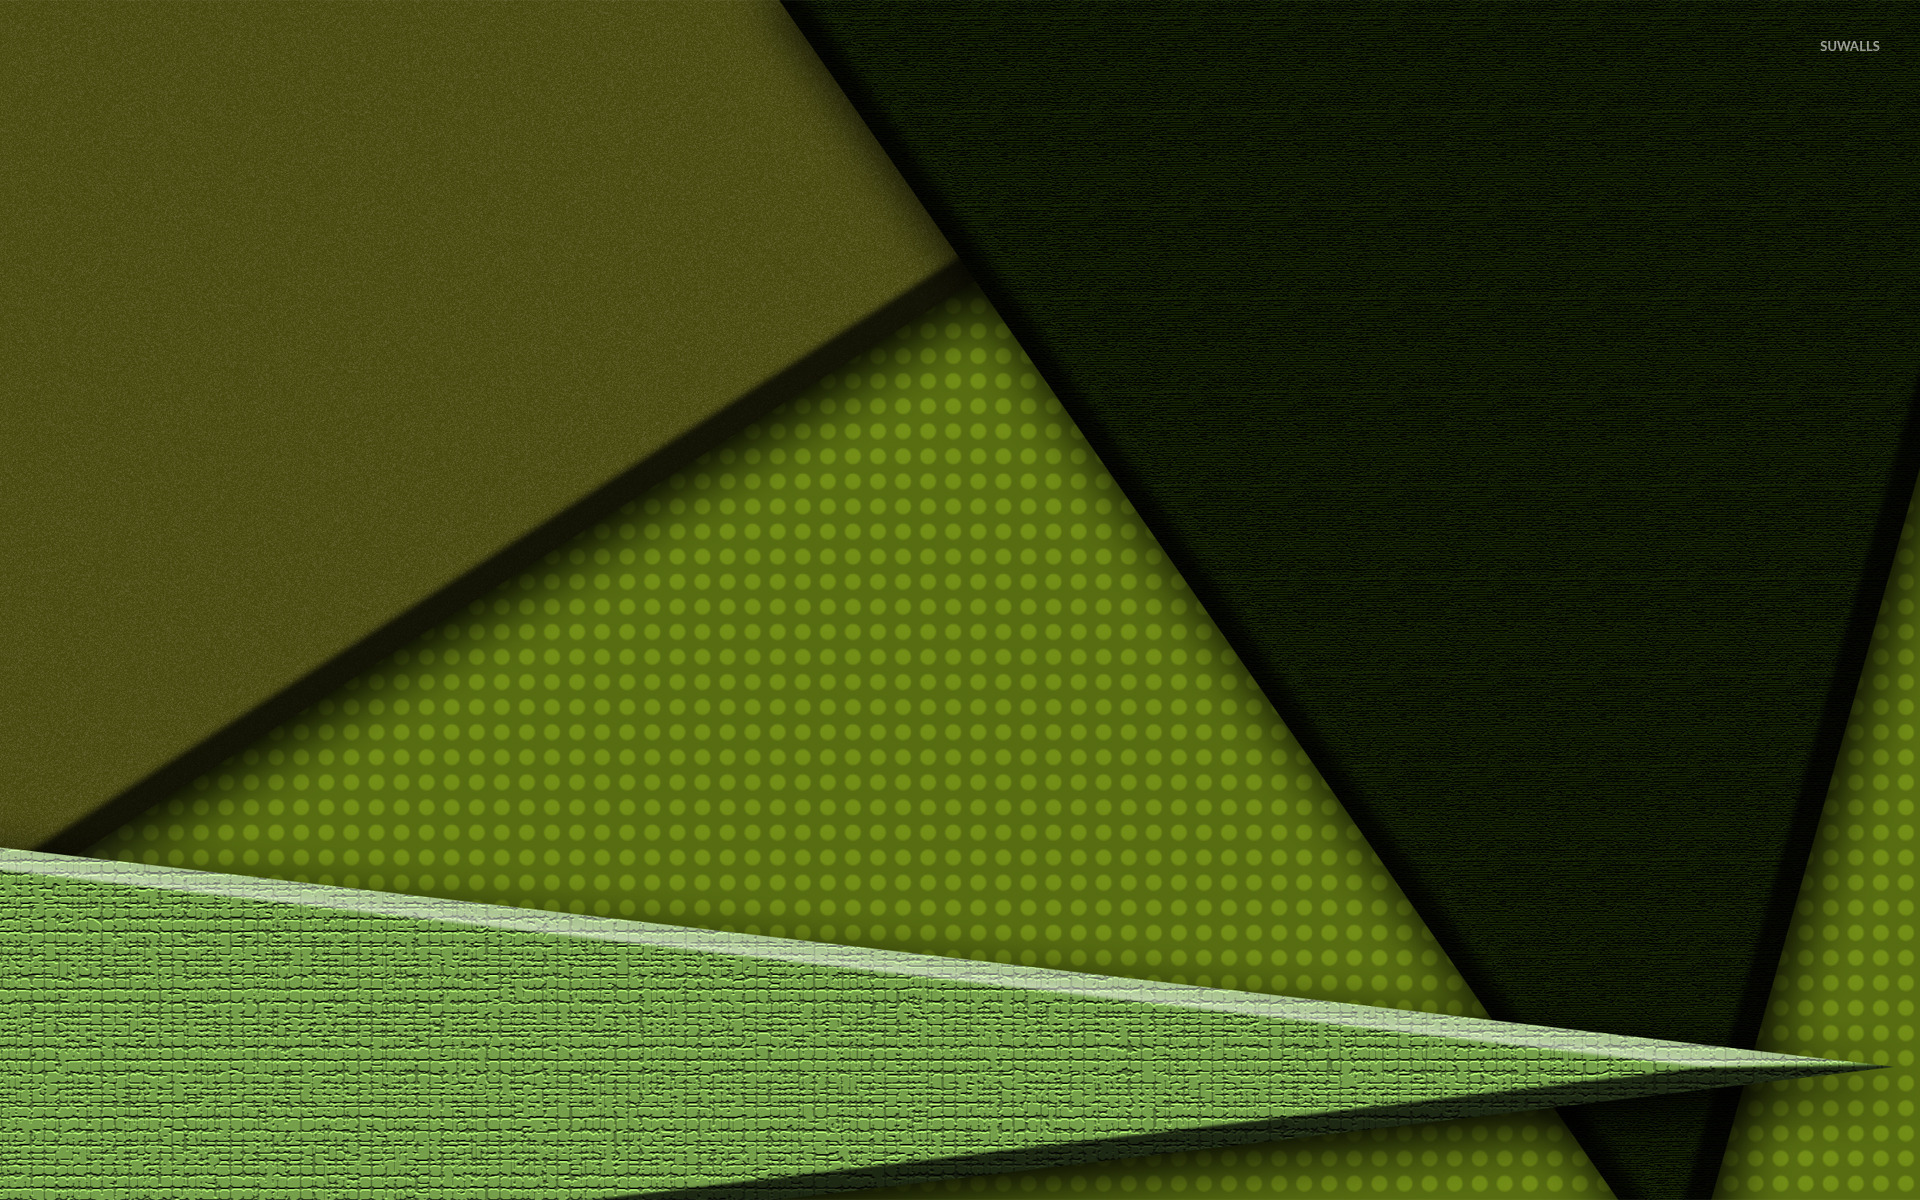 Overlapping textured shapes wallpaper - Abstract wallpapers - #21979